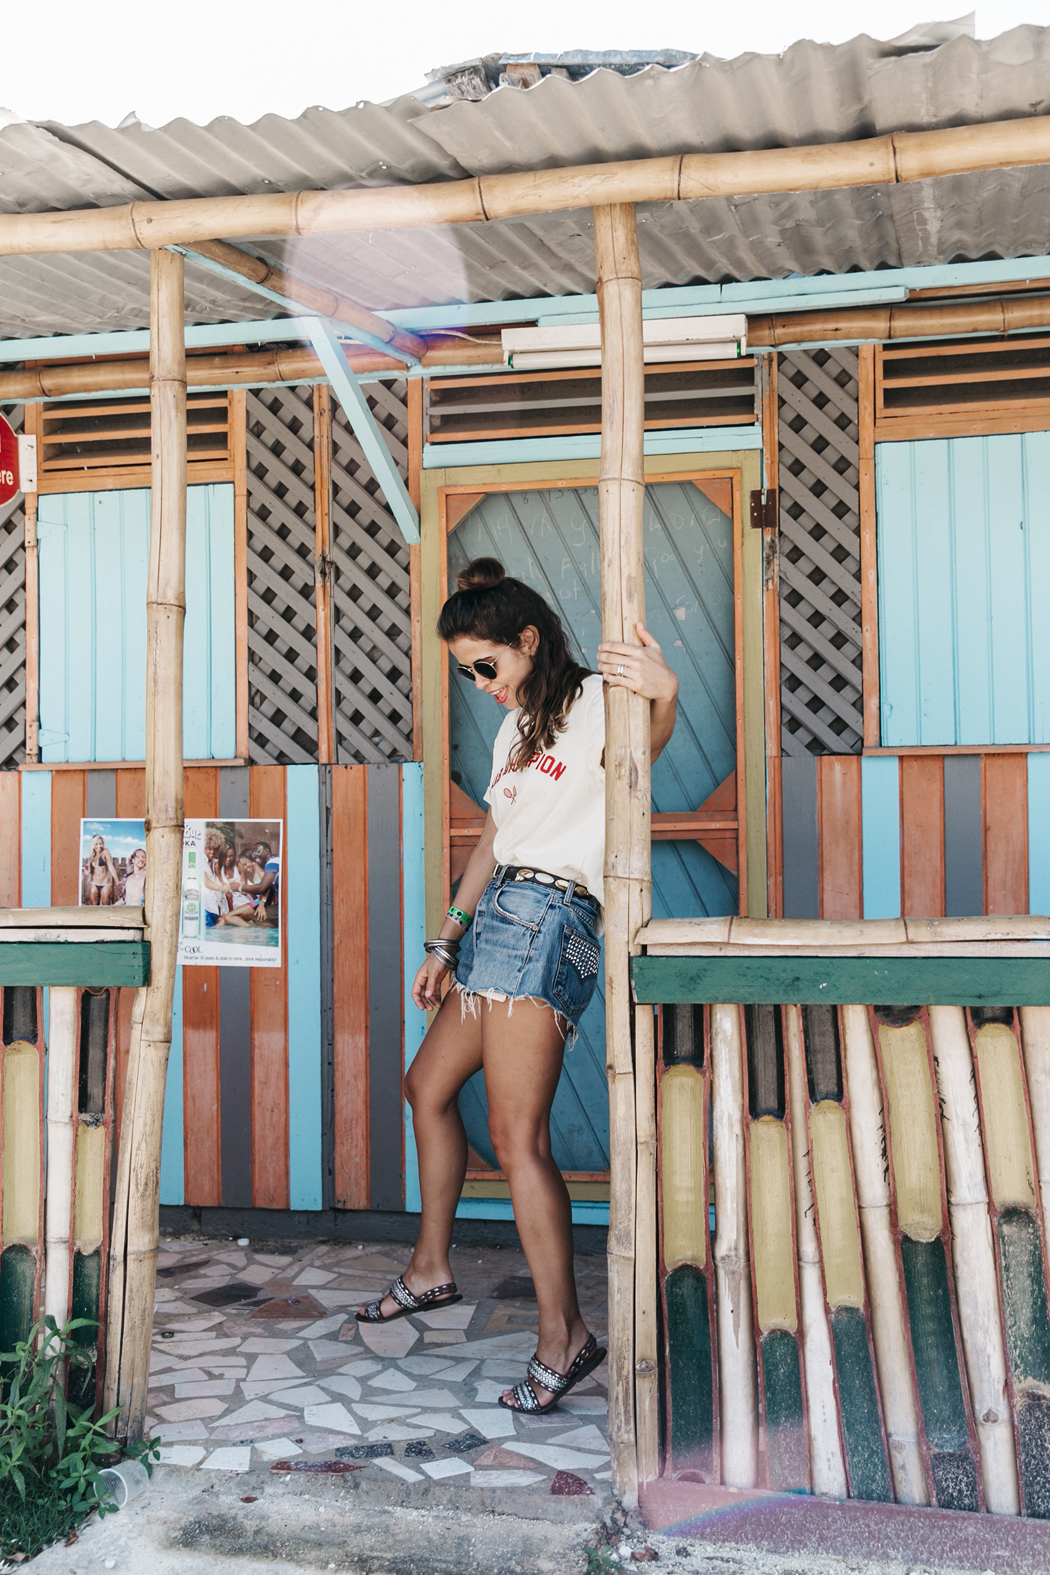 Jamica-Sugar_Cane_Field-Levis-Straw_Hat-Reebok_Tee-Outfit-Summer-Collage_on_The_Road-Bamboo_Walls-69